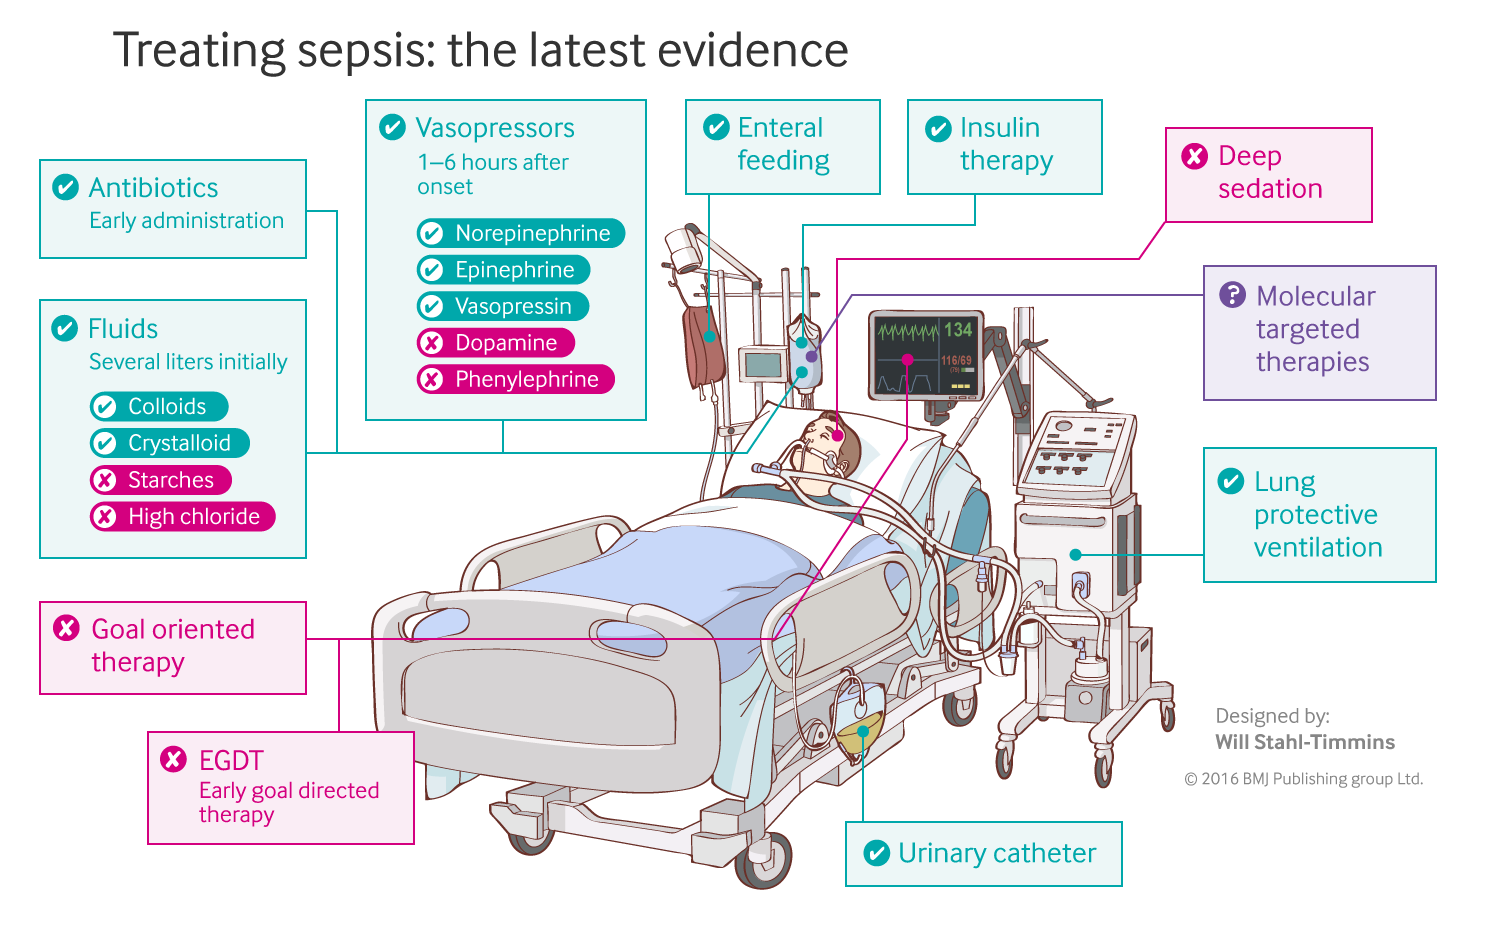 sepsis pathophysiology and clinical management the bmjimage showing screenshot of interactive graphic, showing a man in an intensive care unit with